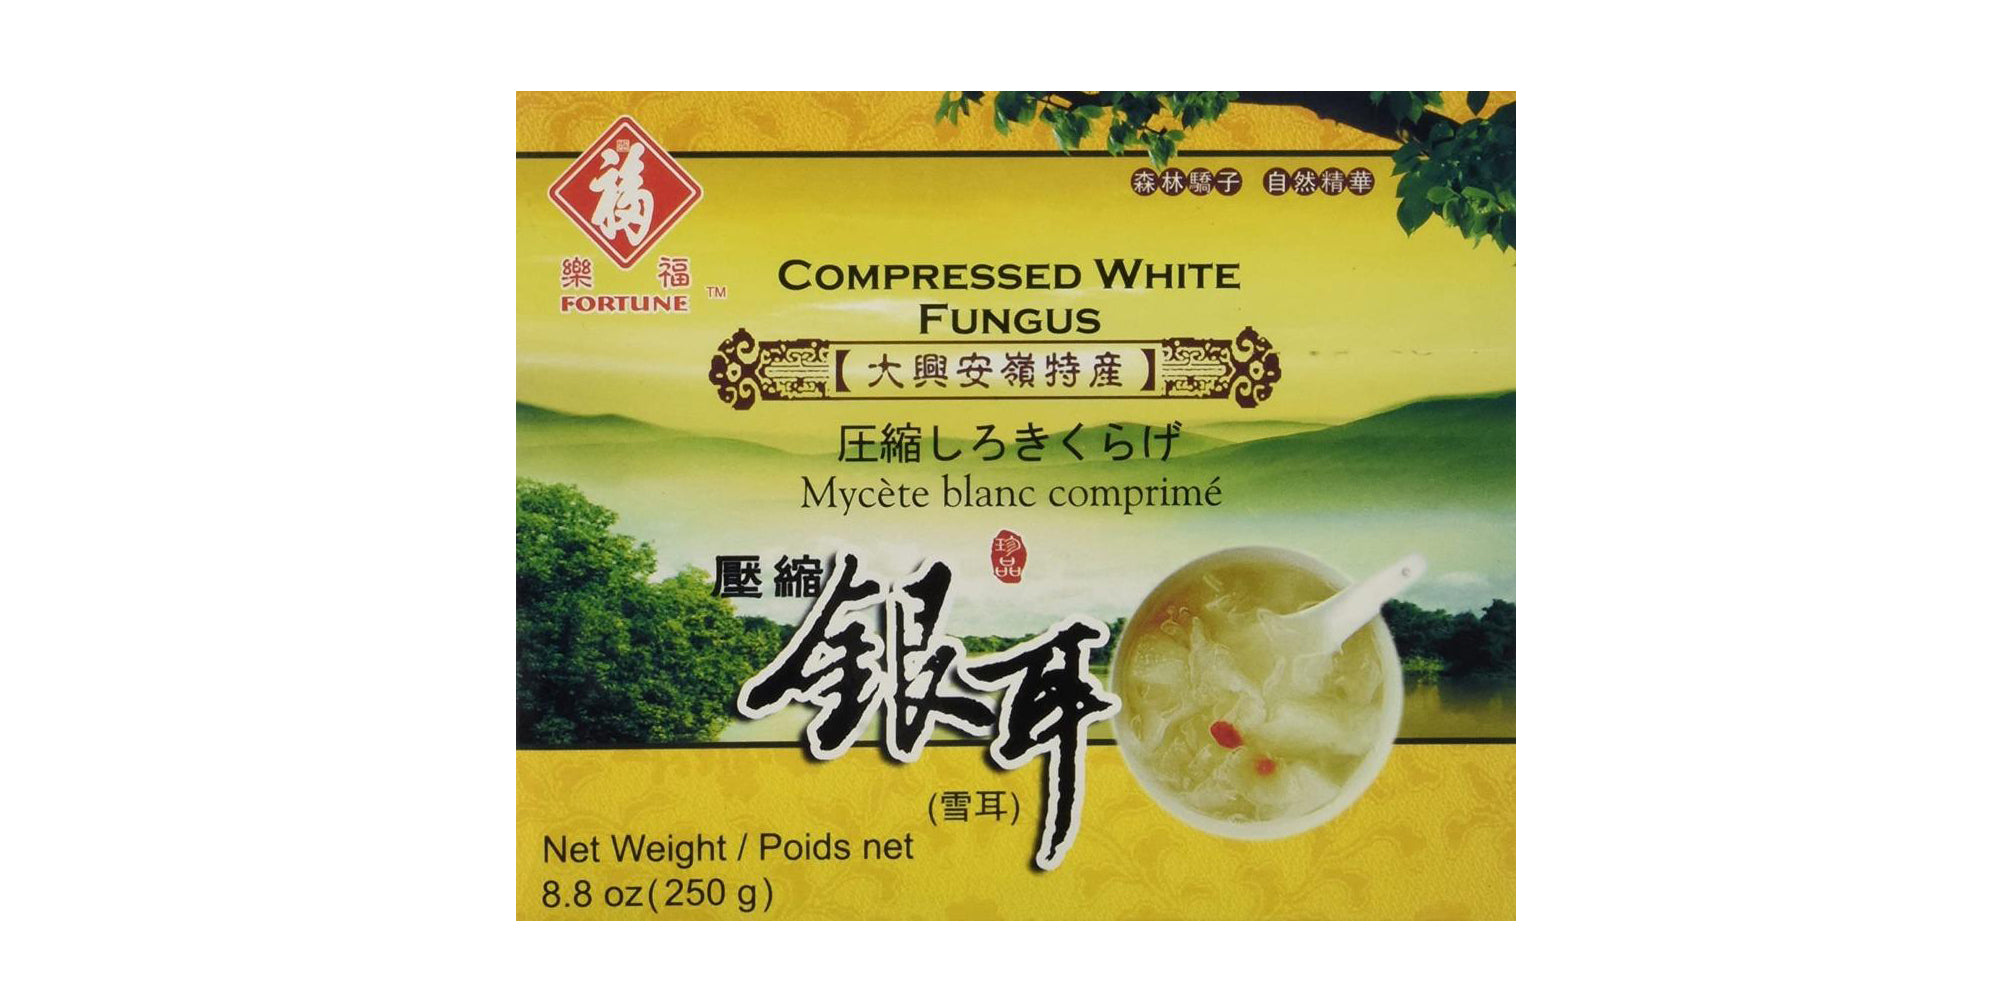 Fortune White Snow Fungus Mushrooms 8.8 Oz (250 g) - 雪耳